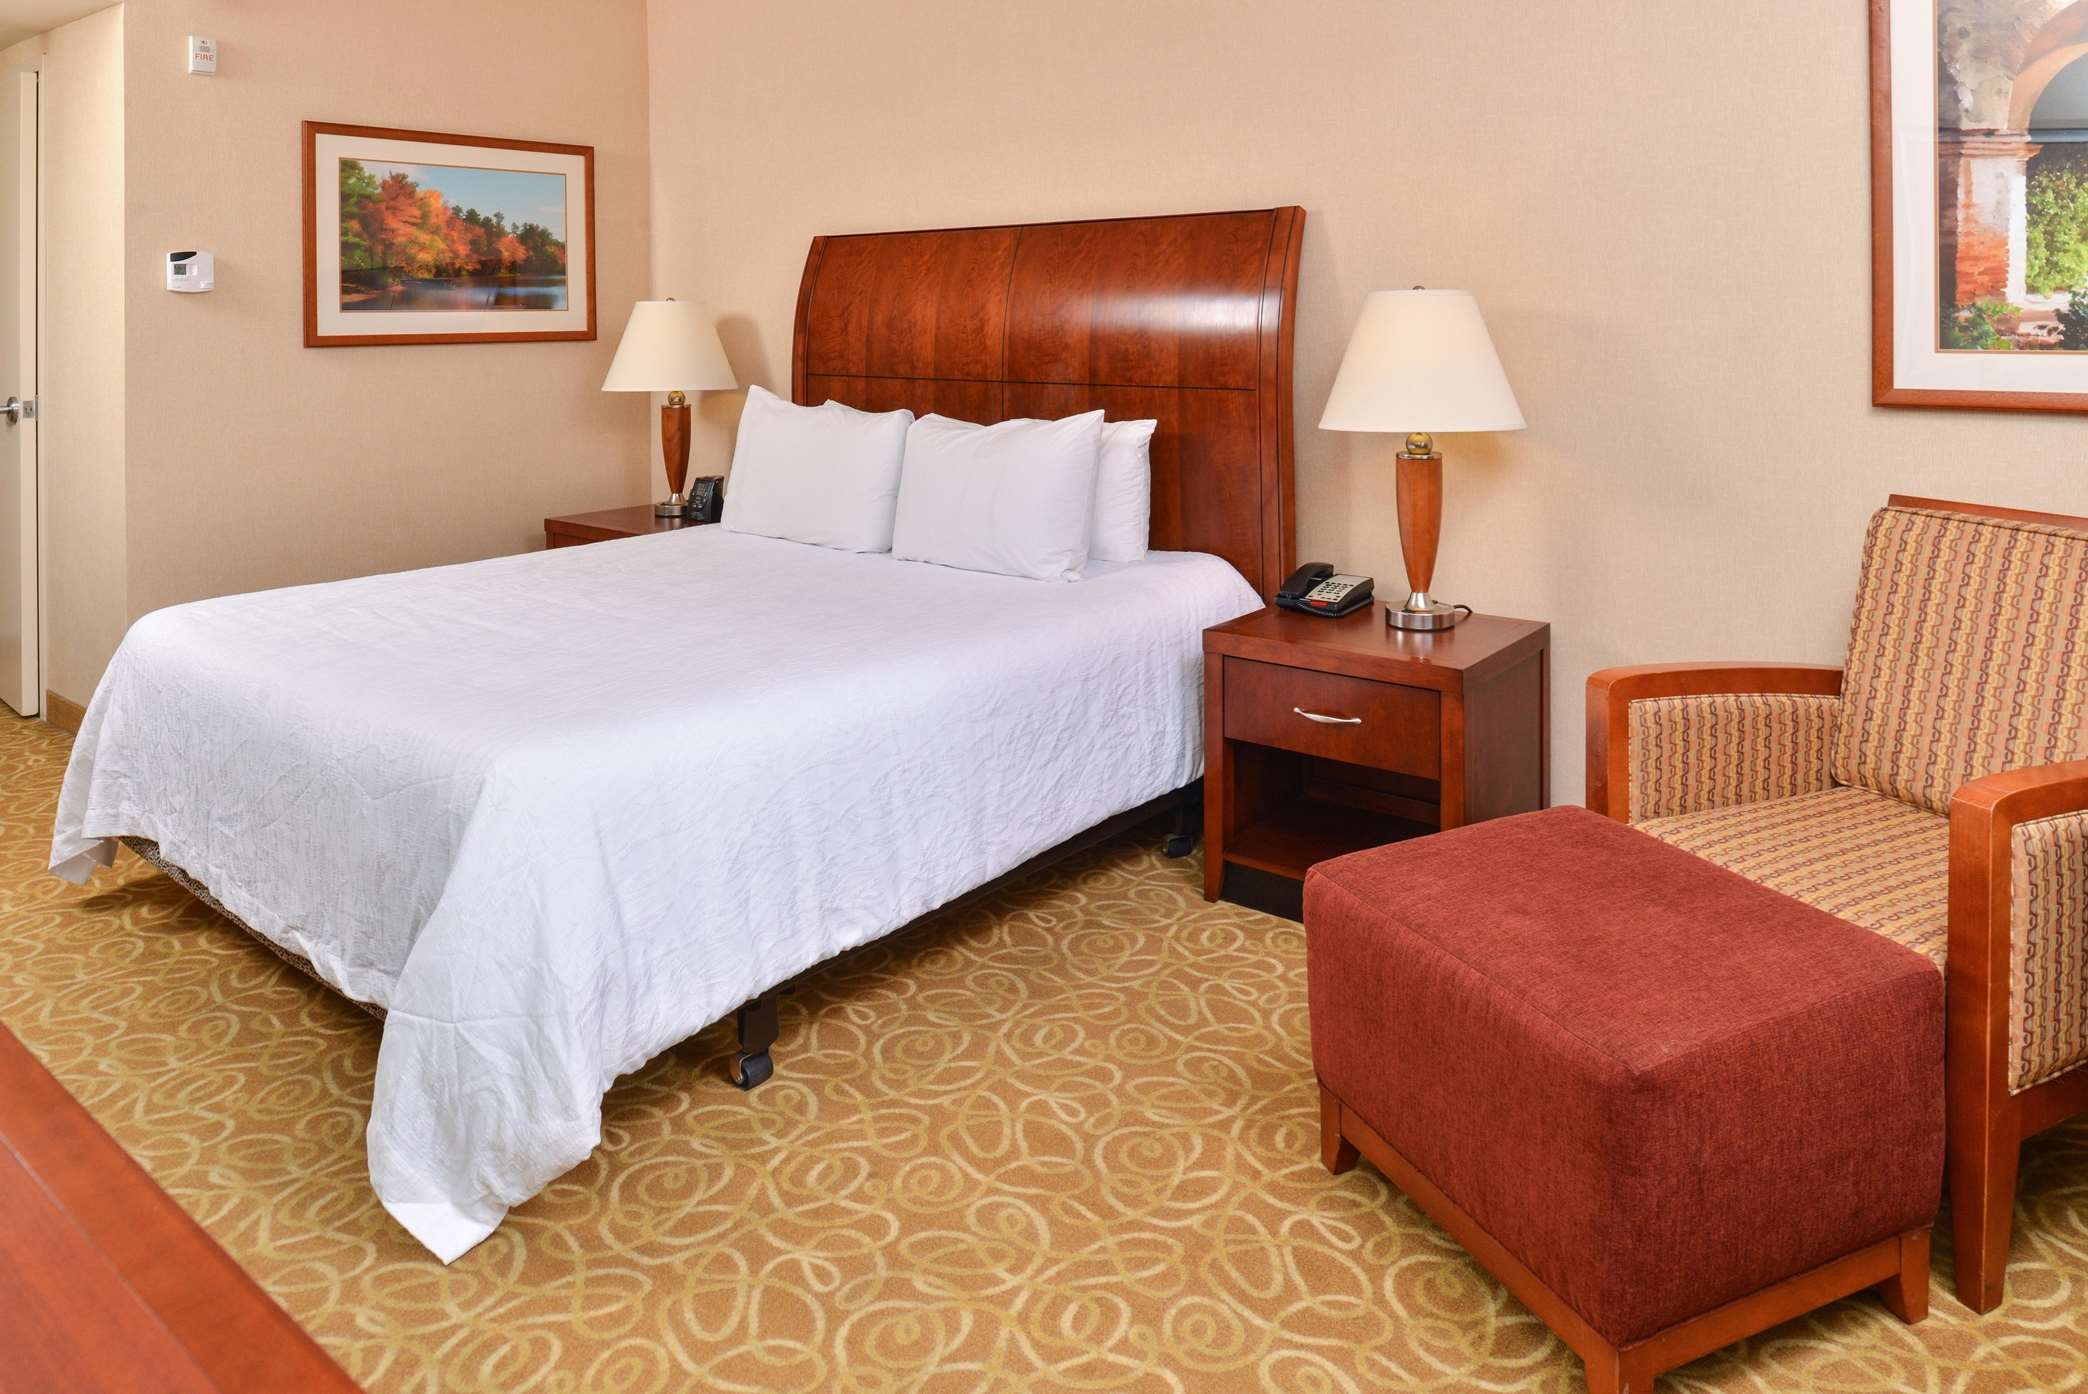 Hilton Garden Inn Reno 9920 Double R Boulevard Reno, NV Hotels U0026 Motels    MapQuest